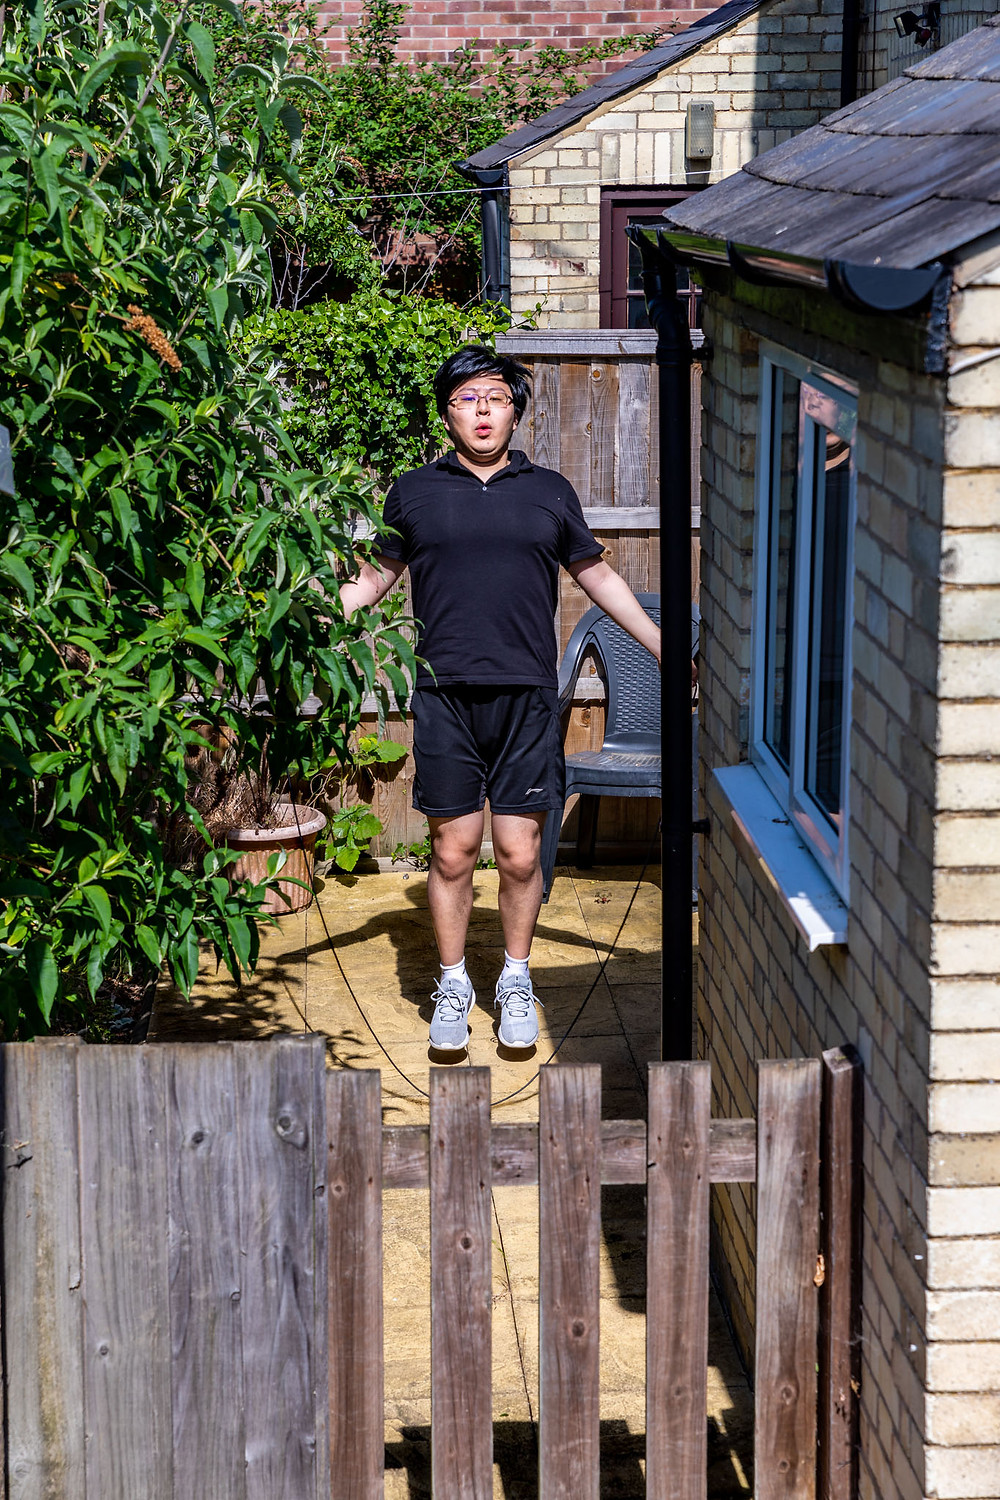 Neighbour gets daily exercise during lockdown by skipping rope in the back garden